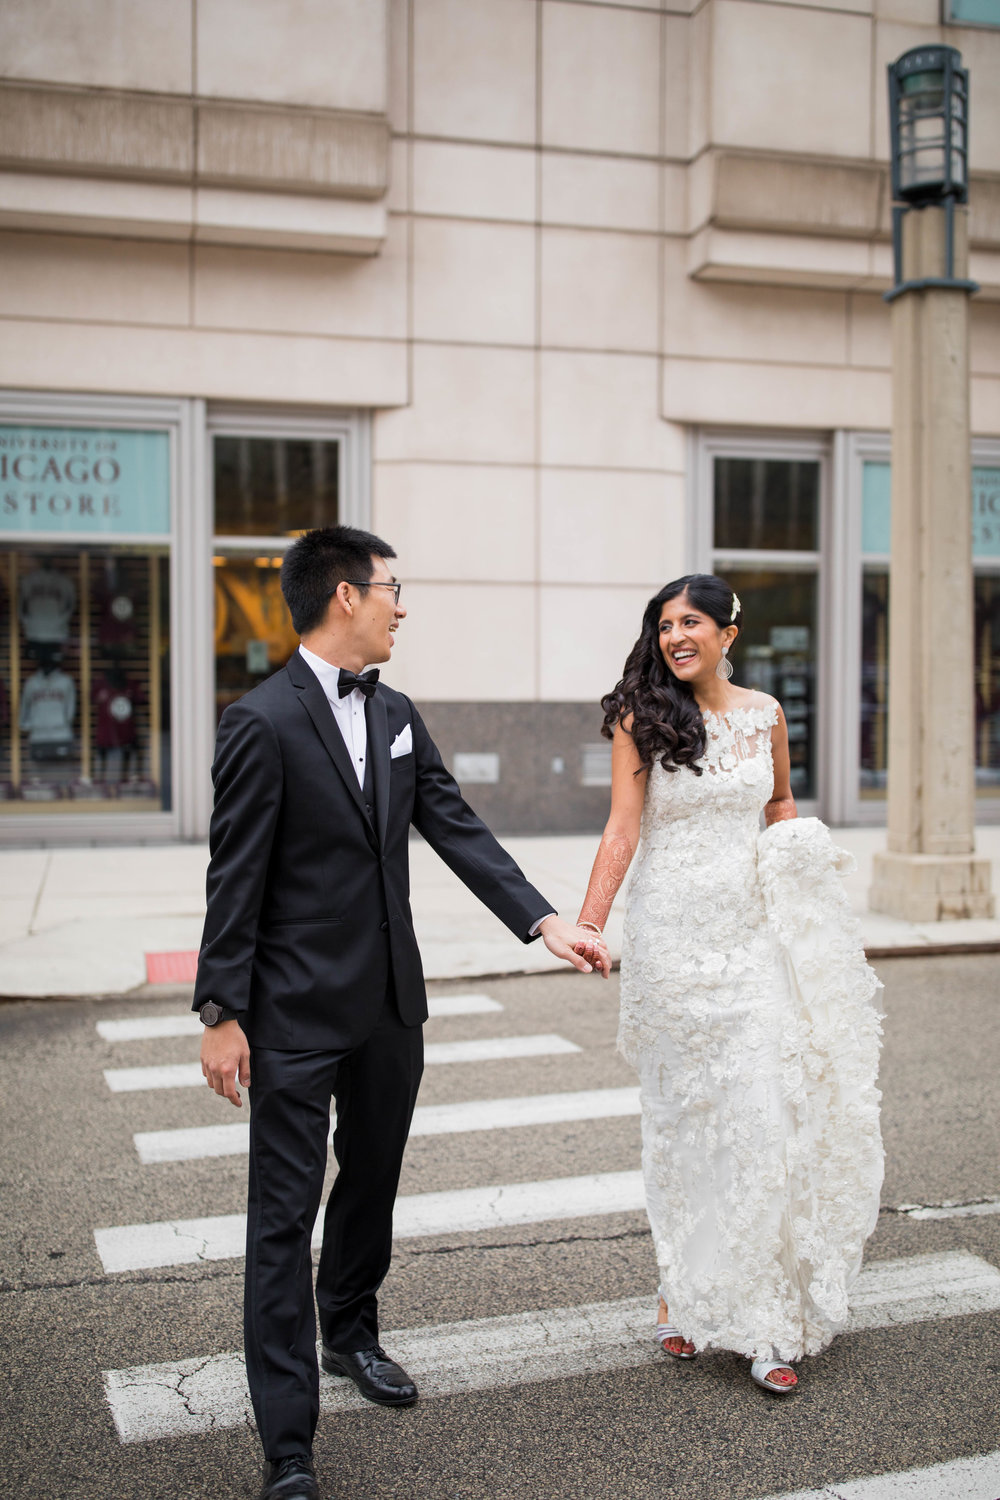 LeCapeWeddings - Chicago South Asian Wedding -105.jpg